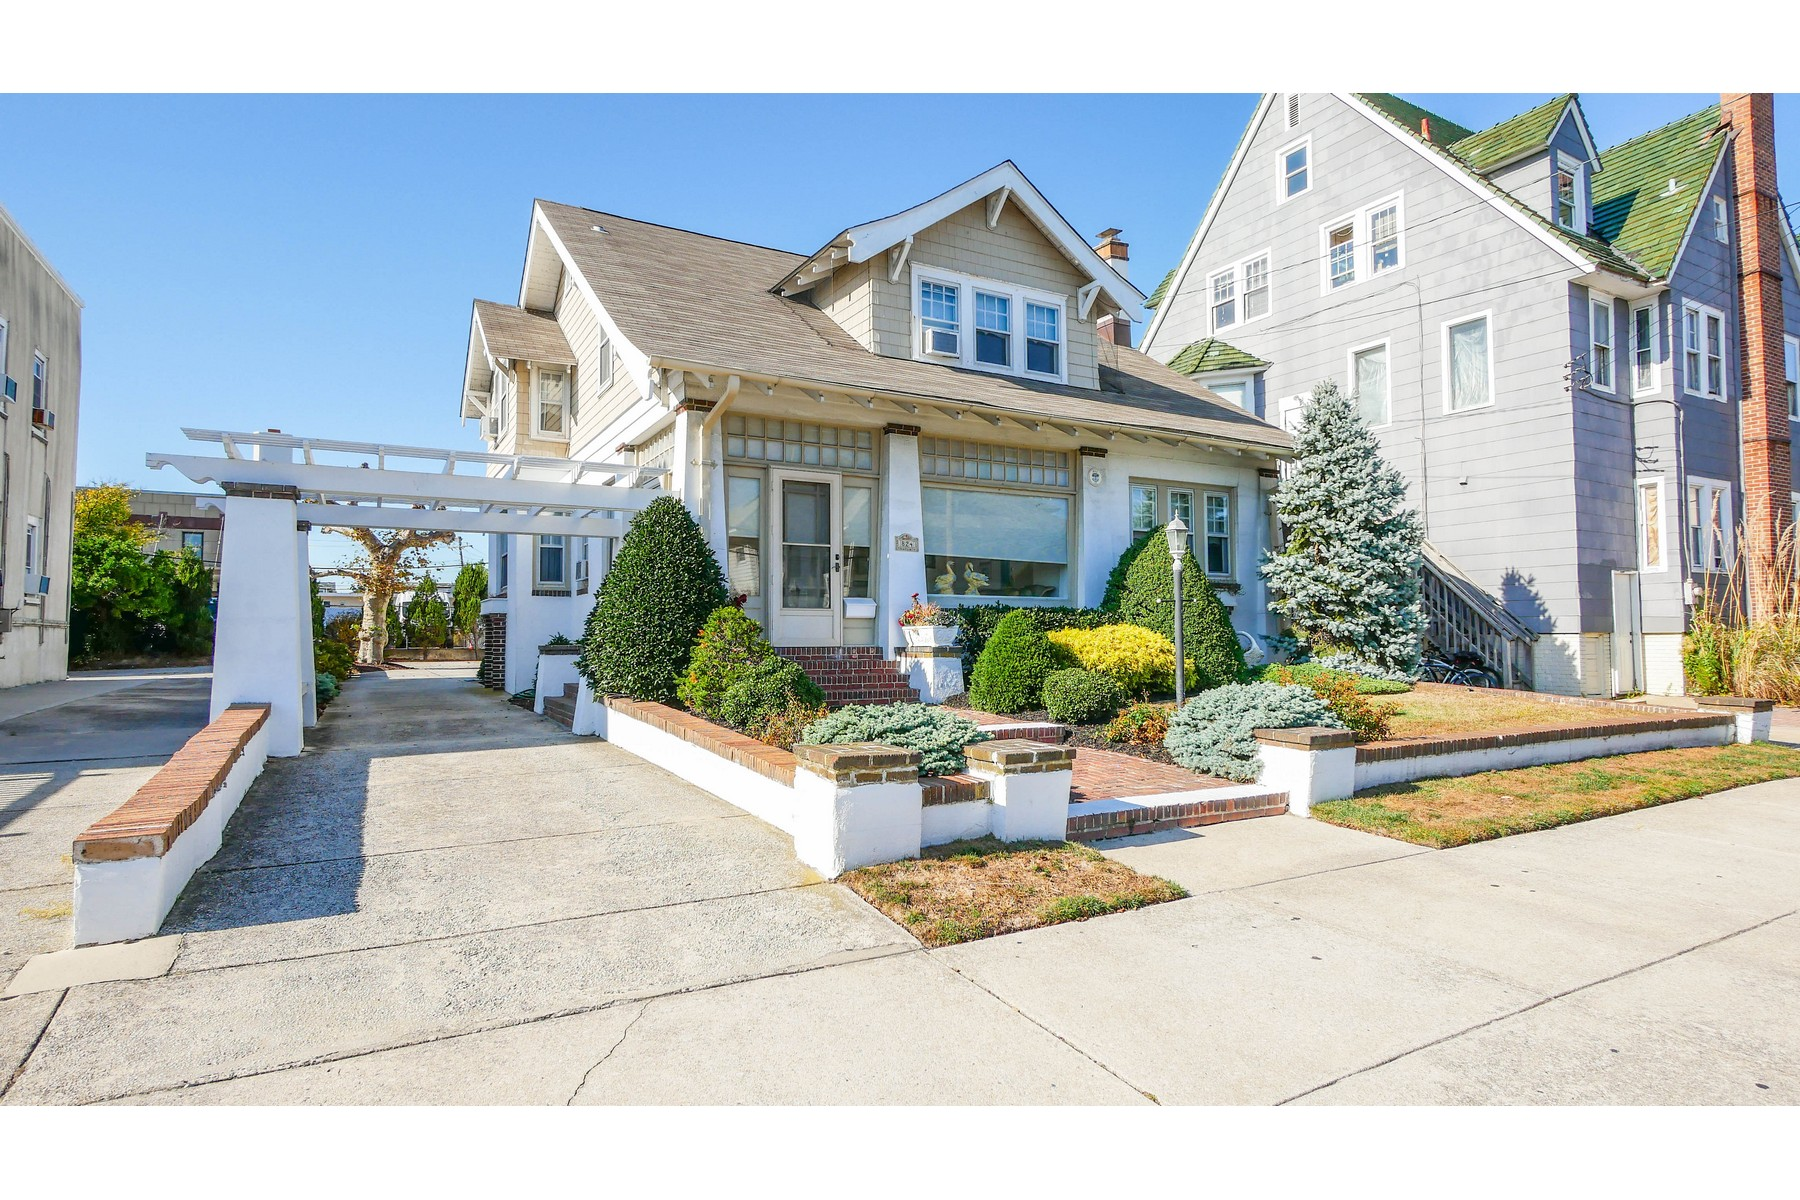 Single Family Homes for Sale at Charming Home 824 Atlantic Avenue Ocean City, New Jersey 08226 United States